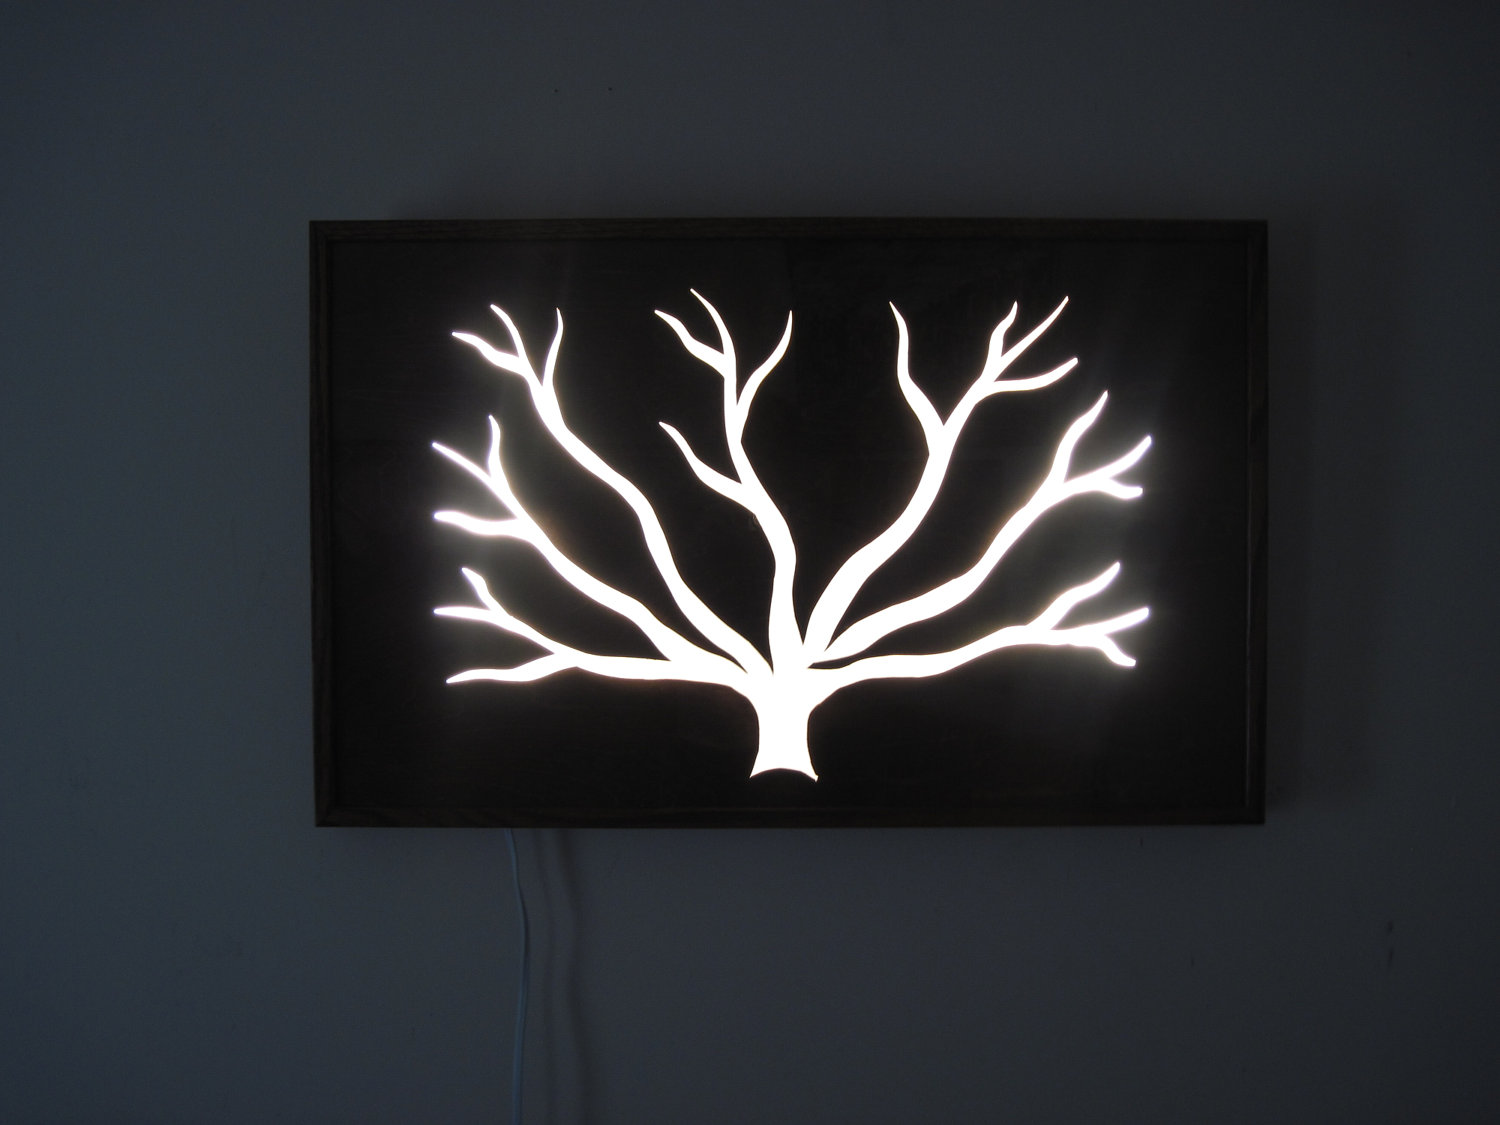 Wall art lights 15 best decisions you can make in regards to wall art lights photo 1 aloadofball